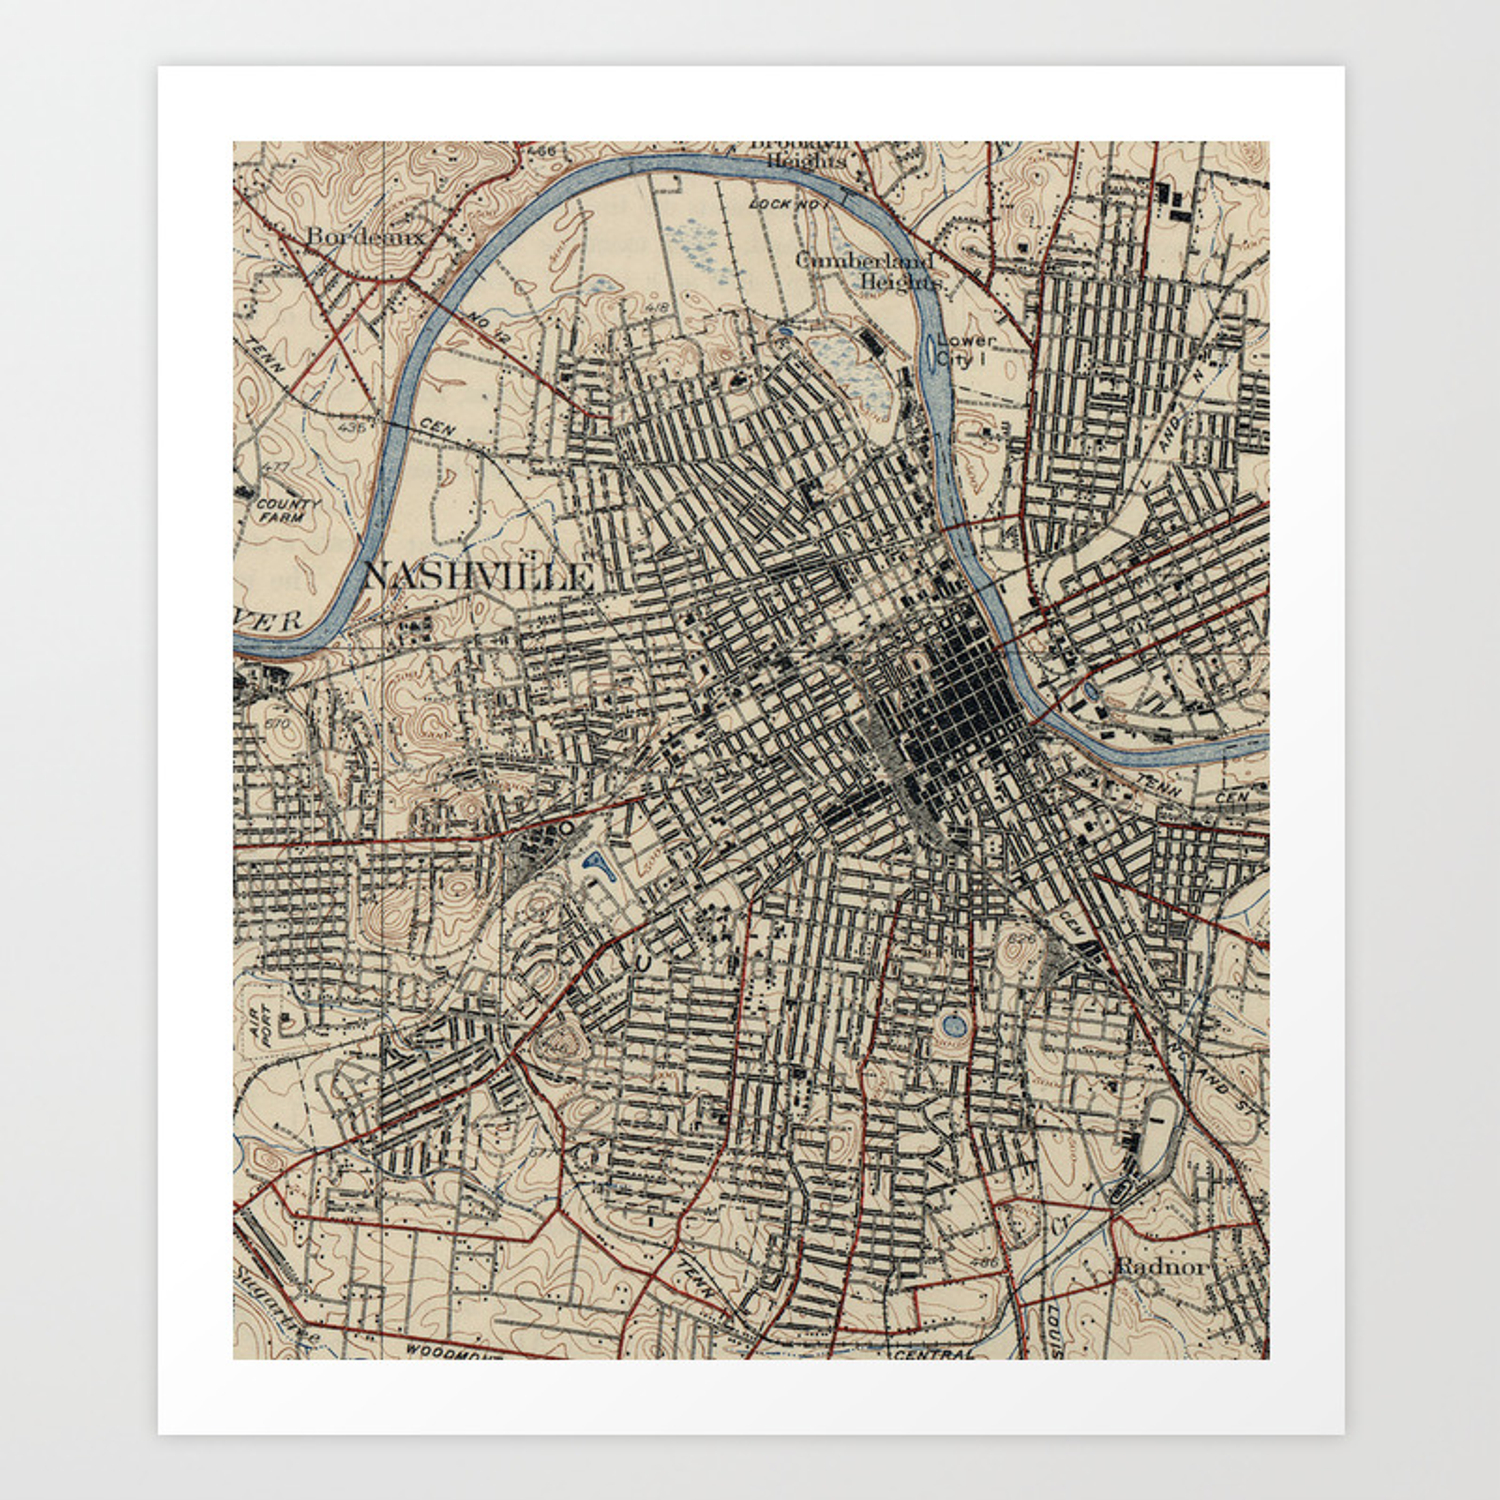 It is an image of Printable Map of Nashville intended for tennessee